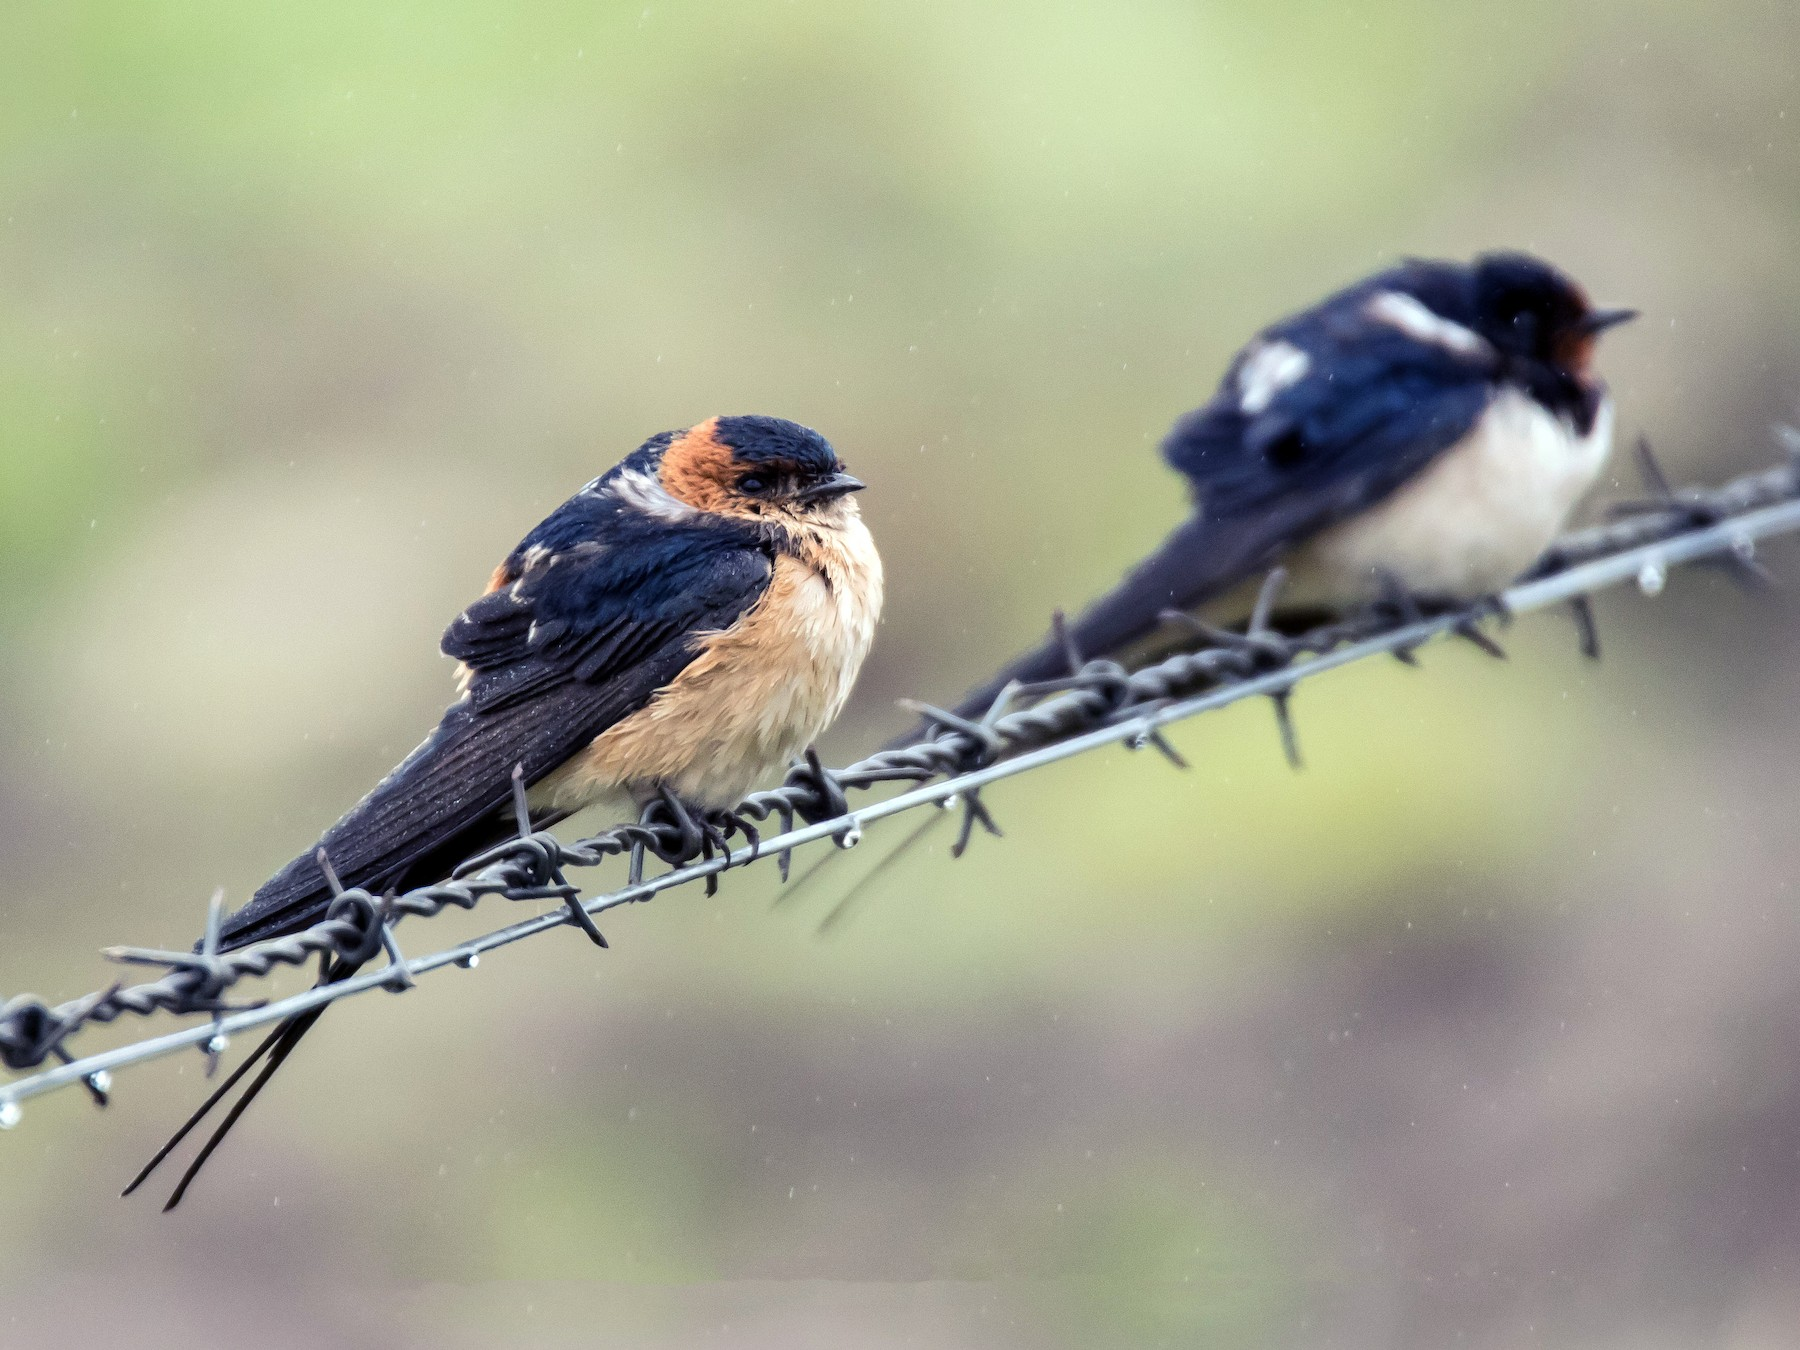 Red-rumped Swallow - Tânia Araújo